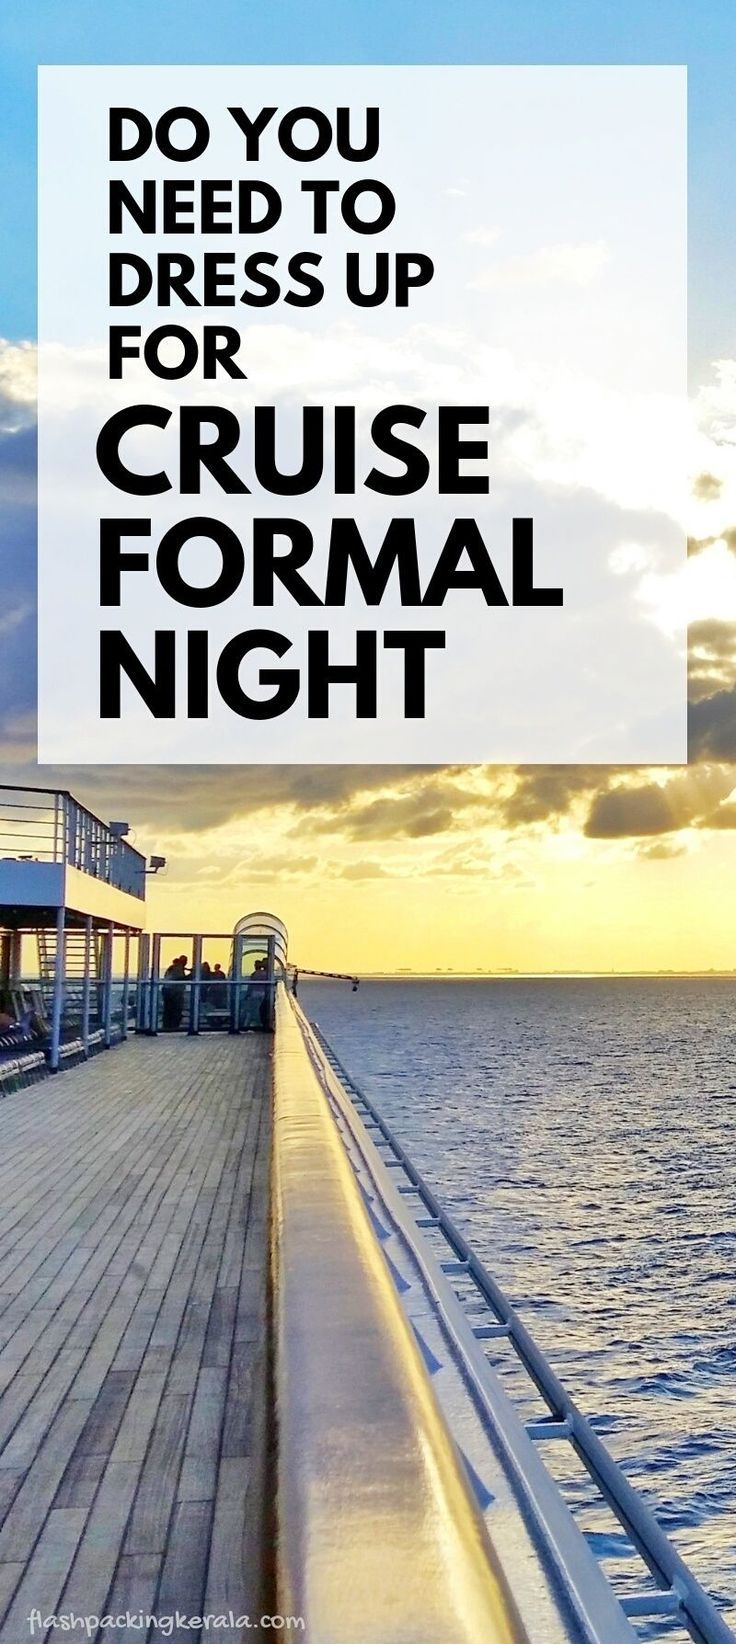 Cruise Outfit Ideas What To Wear On A Carnival Cruise Formal Night Caribbean Cruises Cruise Formal Night Cruise Travel Carnival Cruise